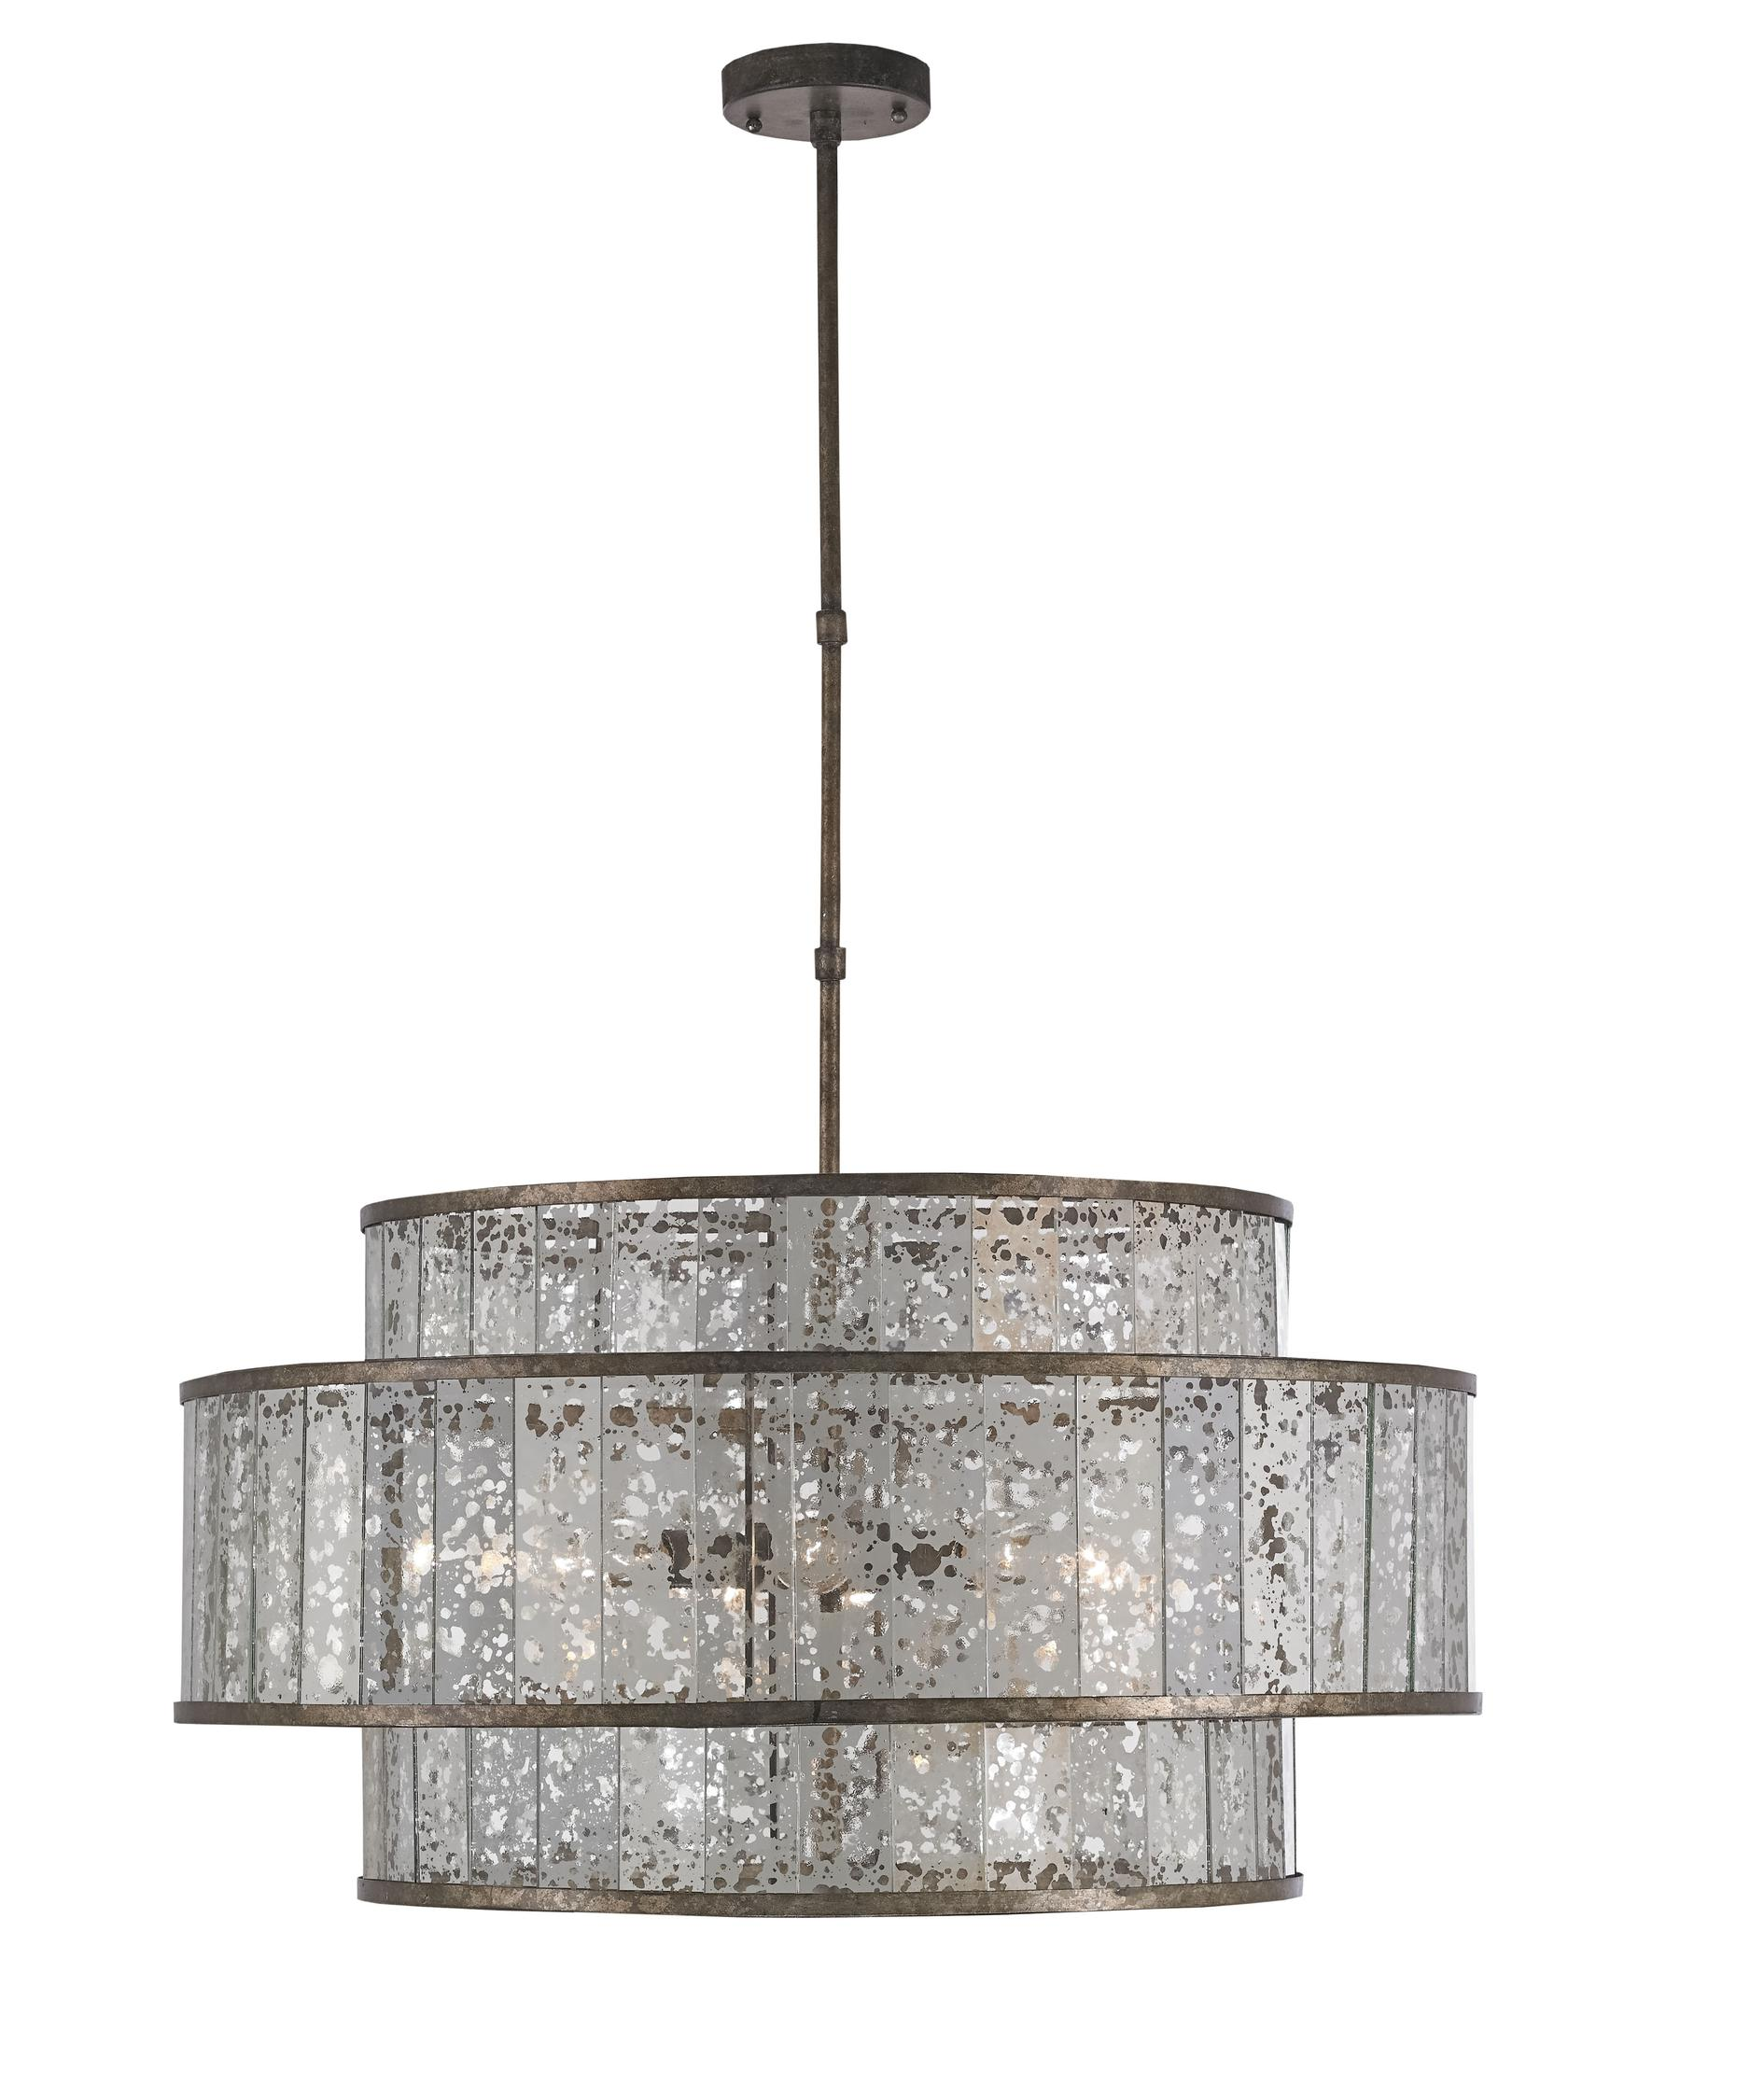 currey and company lighting fixtures. shown in pyrite bronze finish currey and company lighting fixtures a